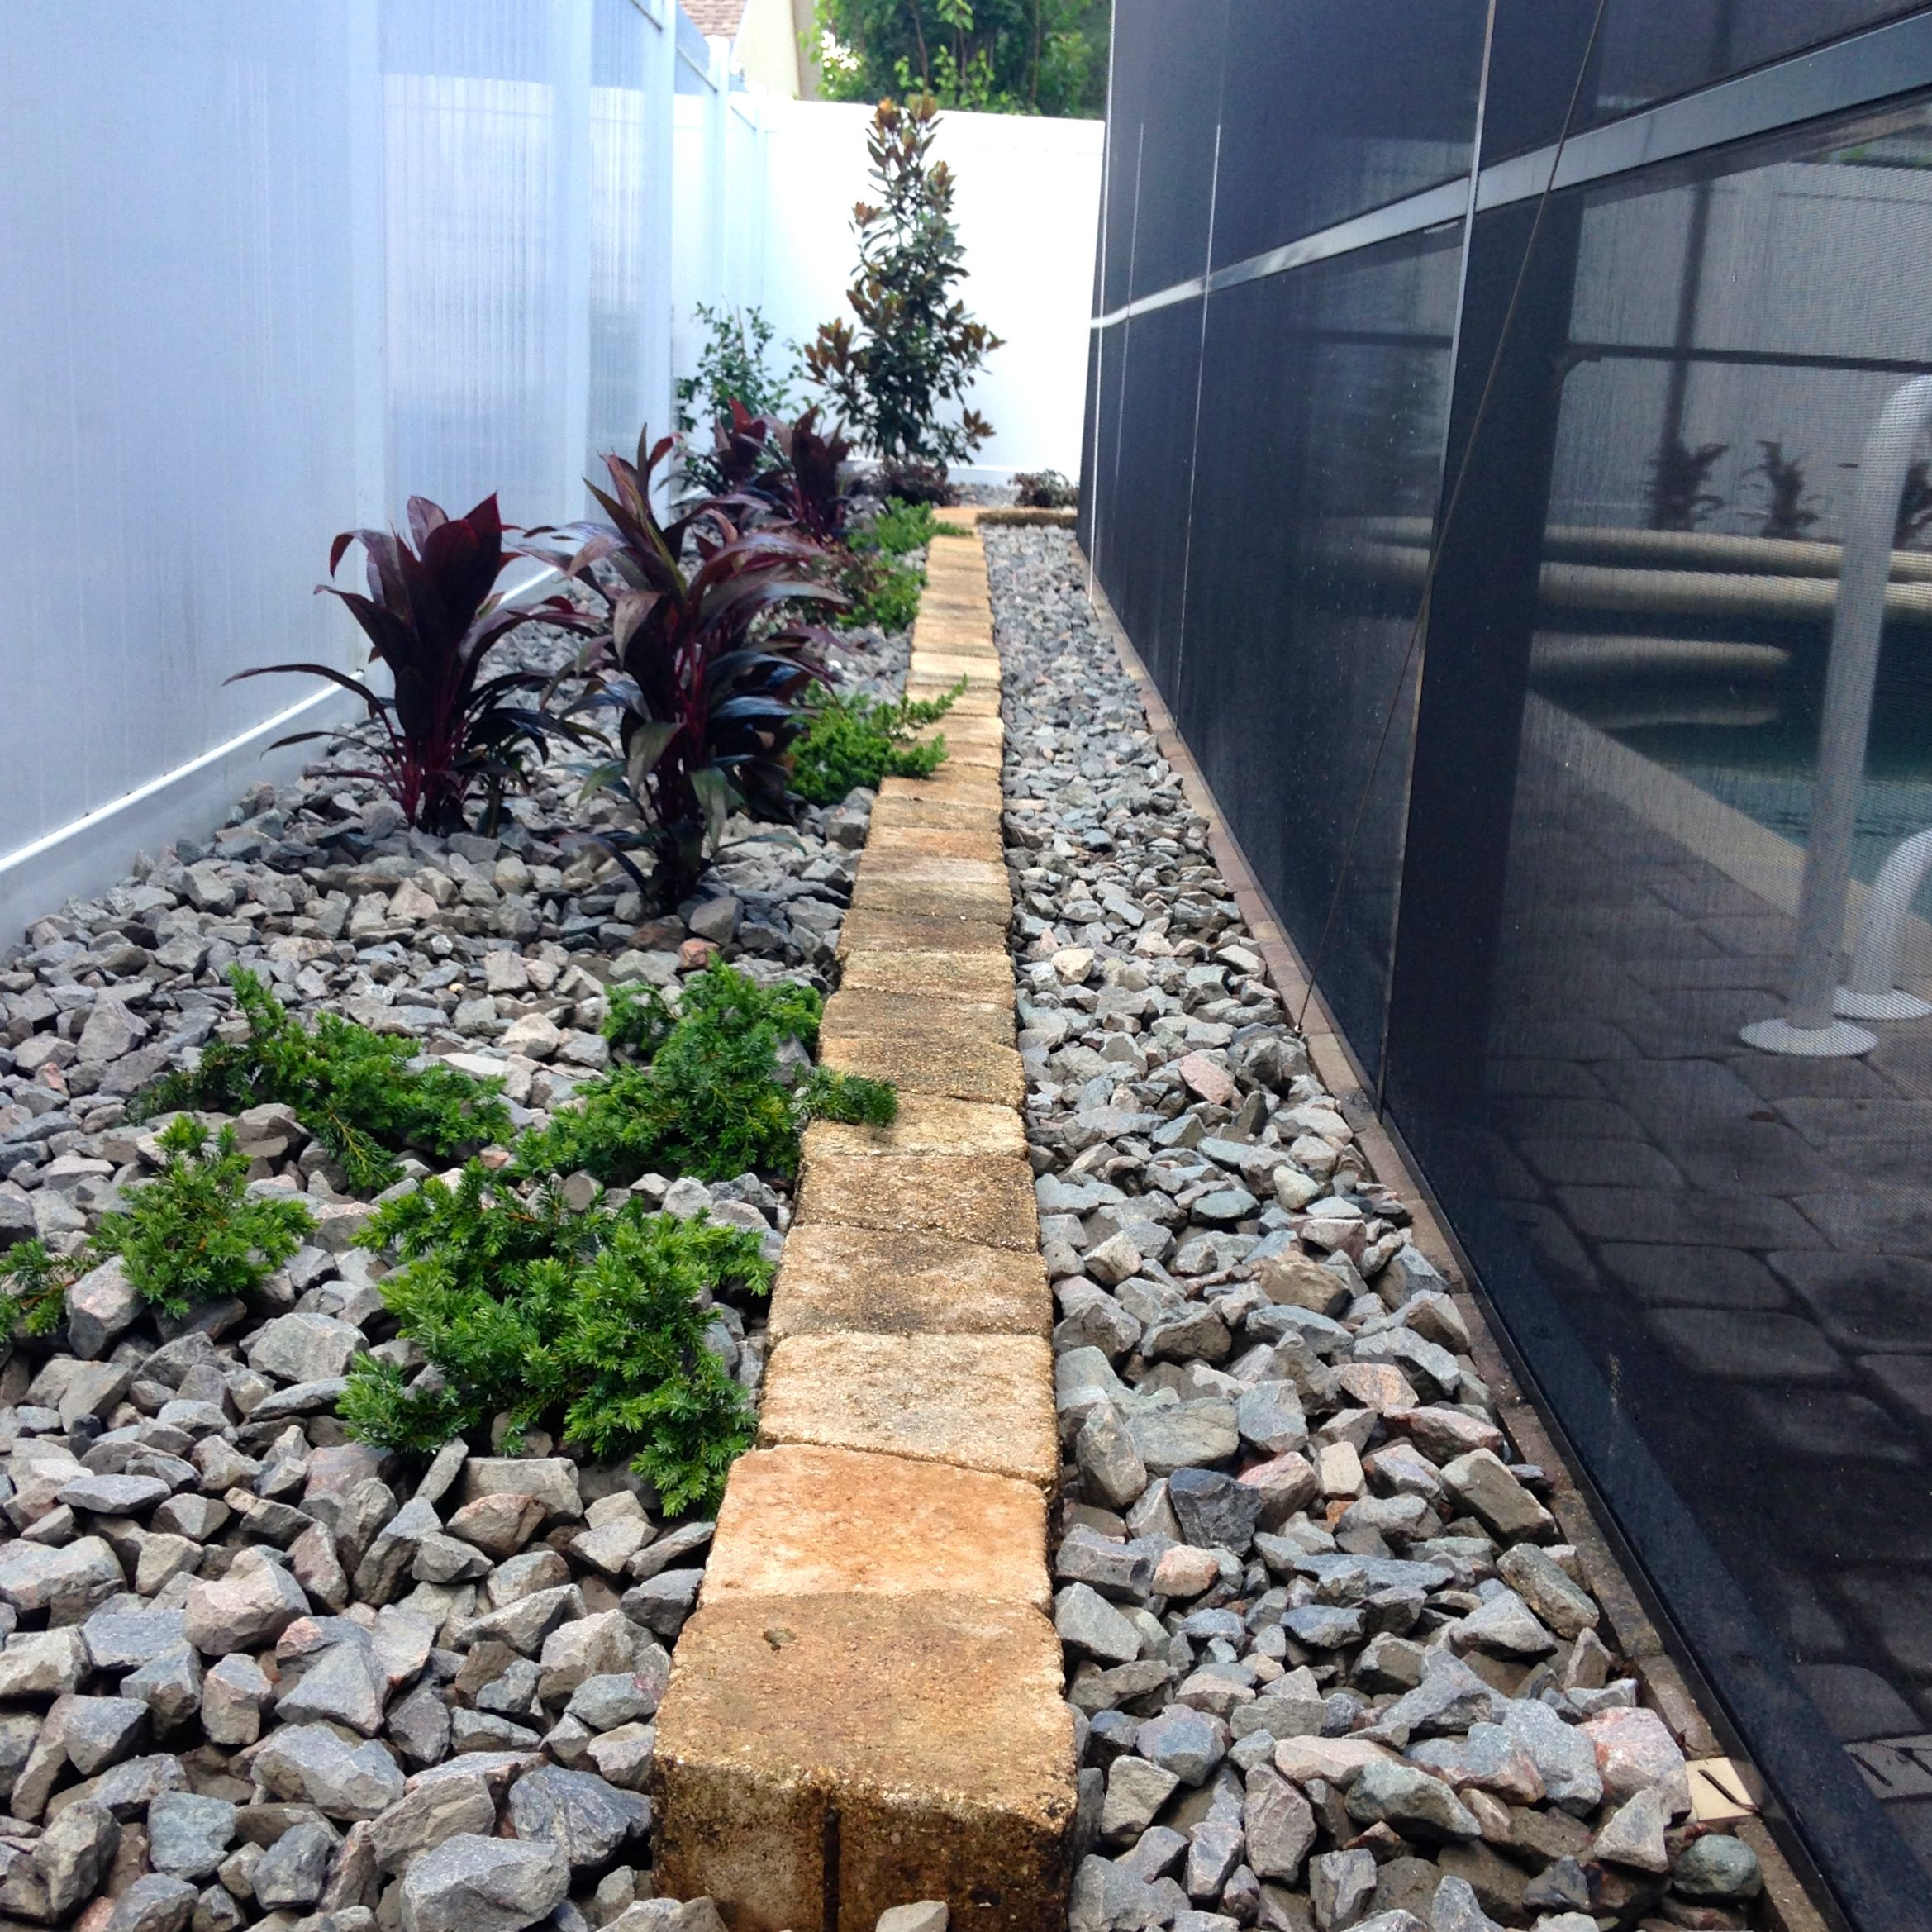 terrace and stones over french drain to resolve runoff flooding